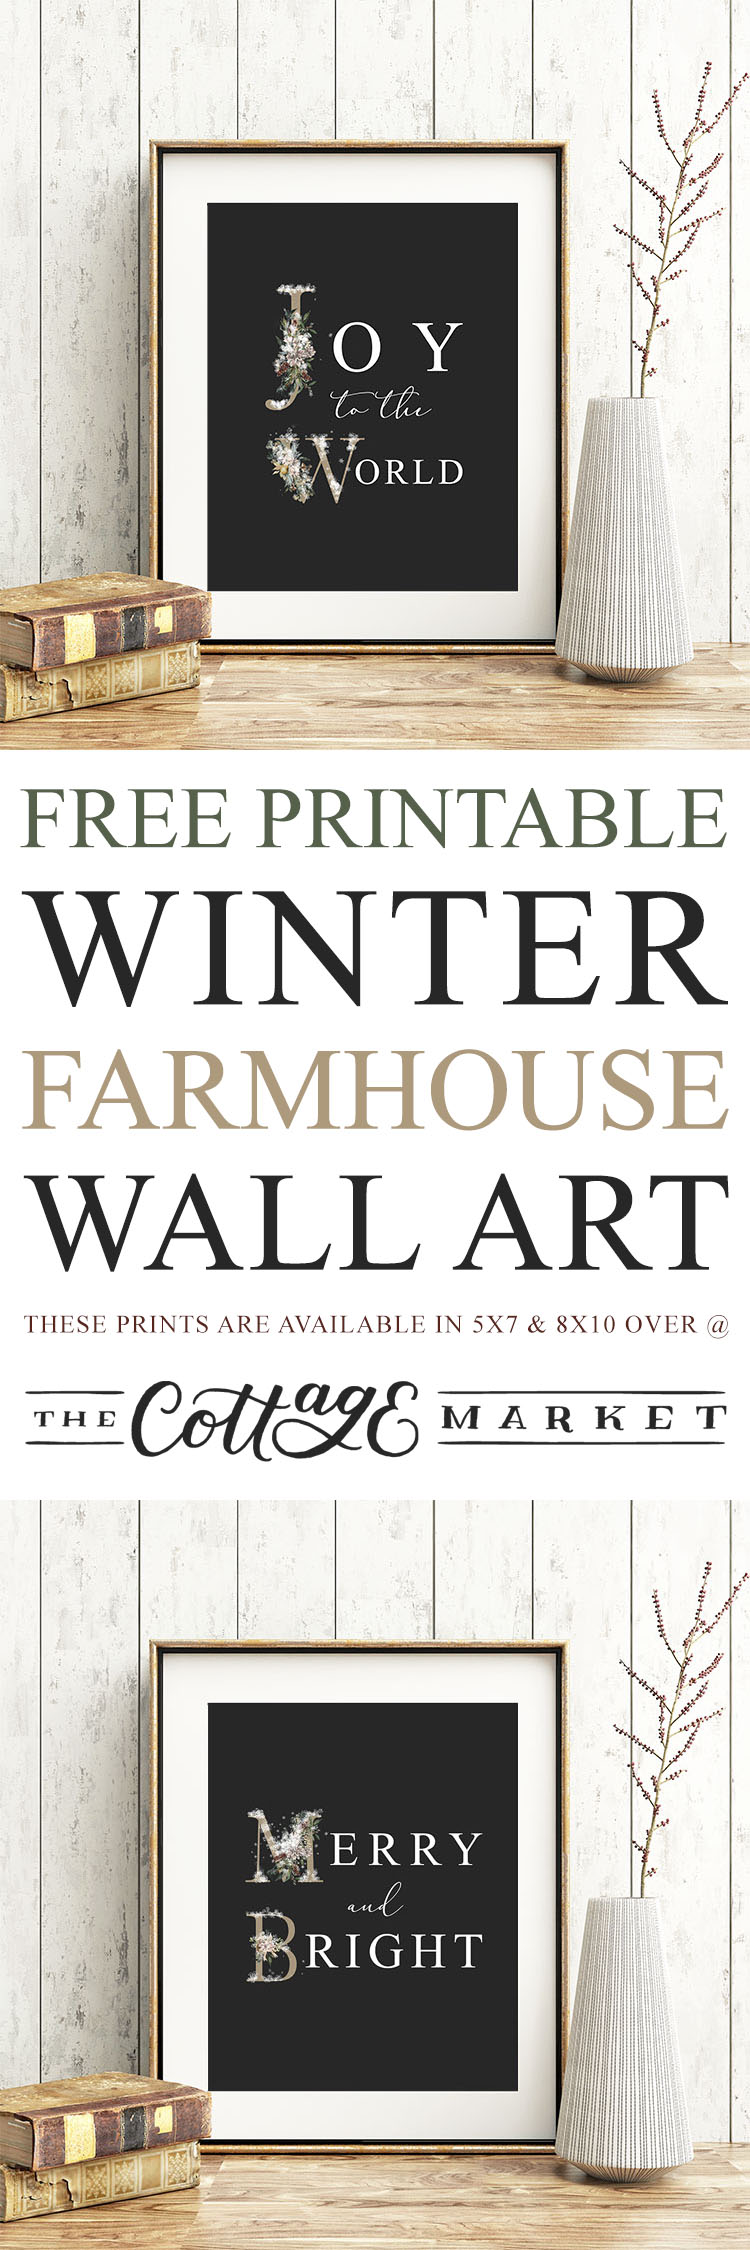 Free Printable Winter Farmhouse Wall Art - The Cottage Market